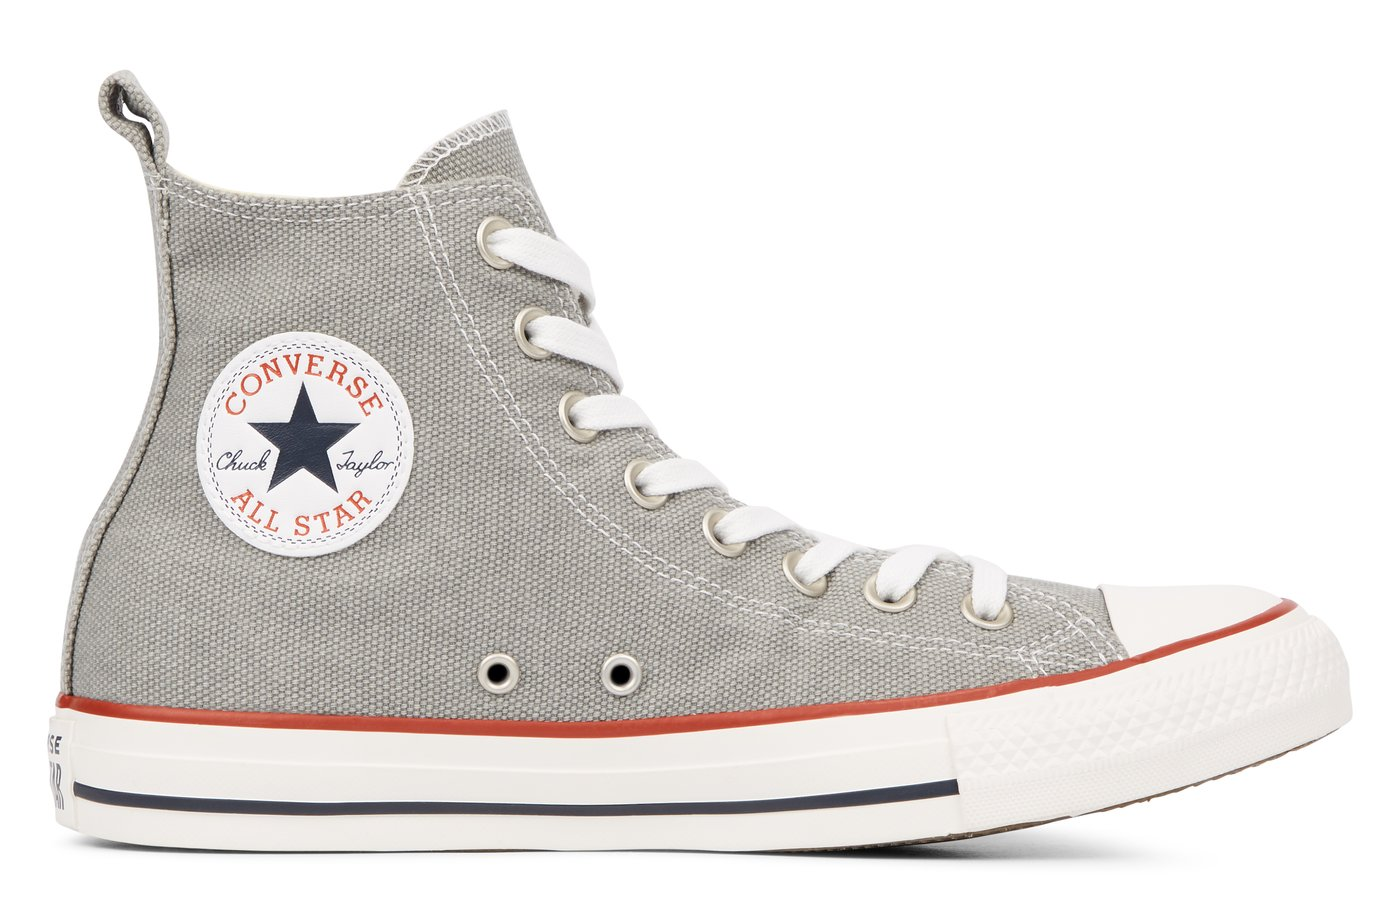 35533b9a82b converse-chucks all star high-damen-grau-164504c-graue-sneaker. converse chuck  taylor all star washed denim ...